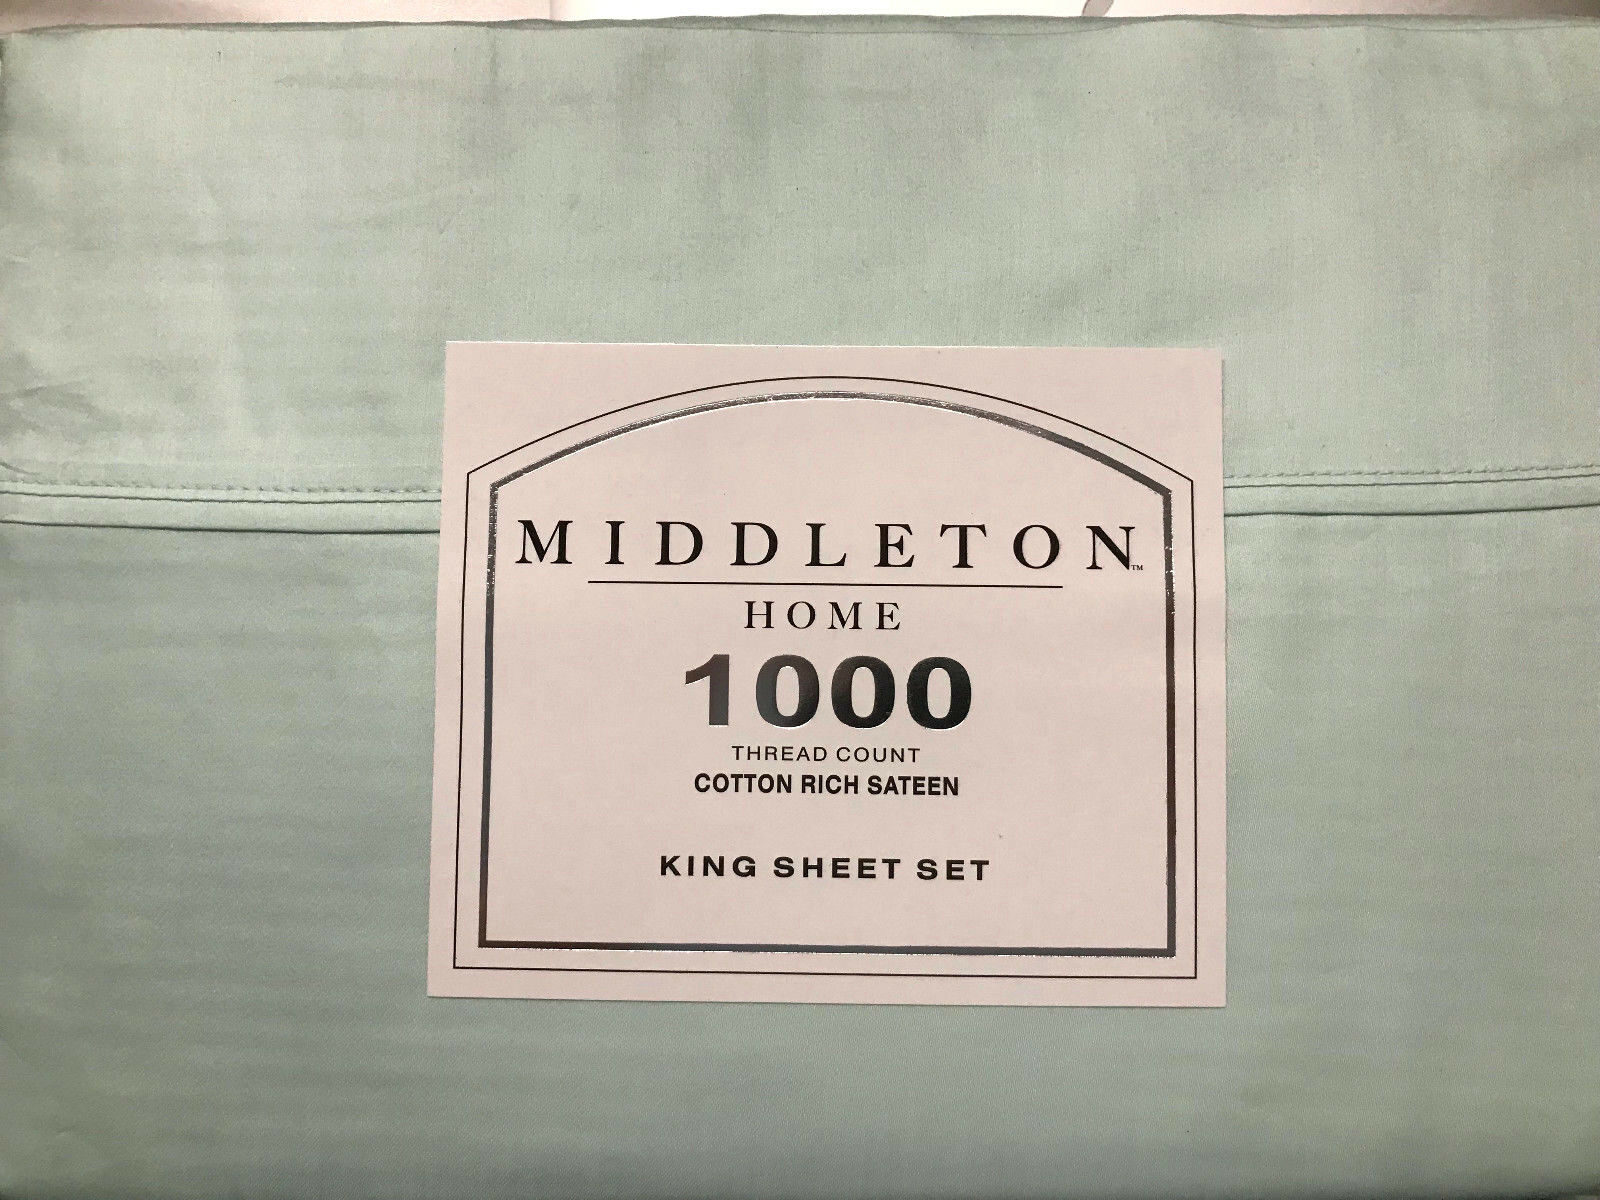 4PC KING SHEET SET AQUA 1000 THREAD COUNT COTTON RICH SATEEN BY MIDDLETON NEW